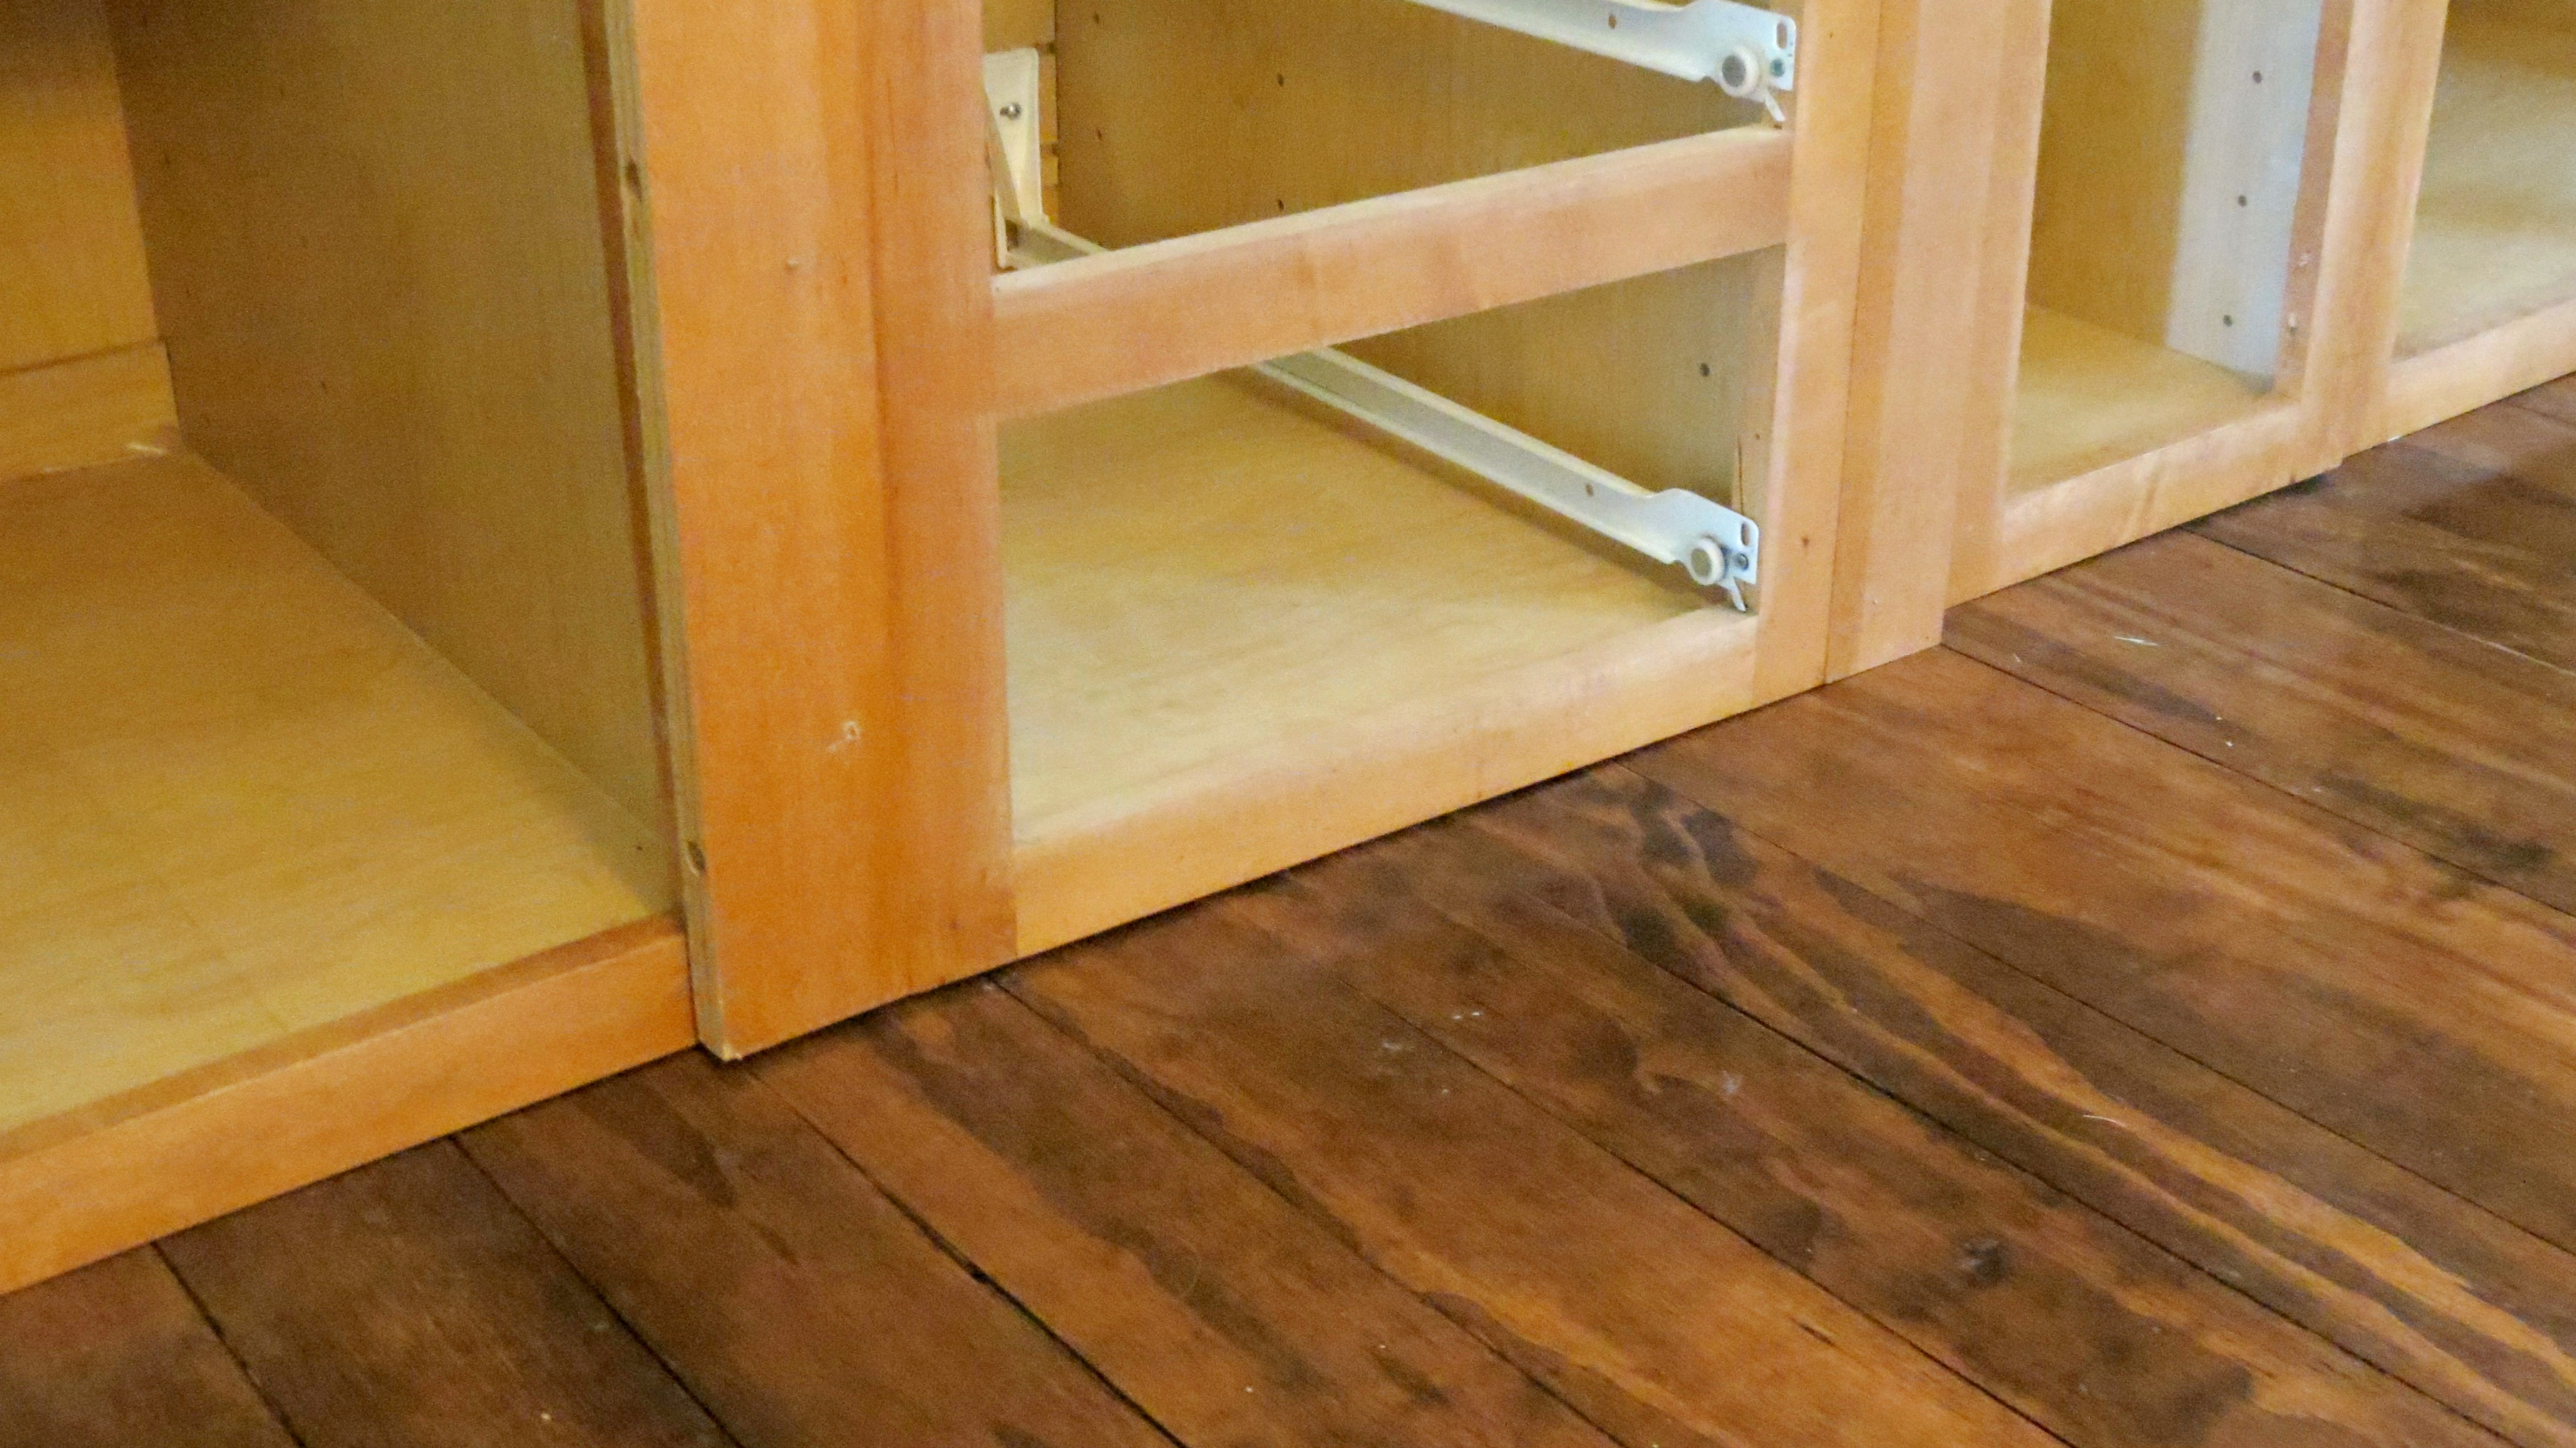 Cabinet Toe Kick Trim. Installing Lower Cabinets 9. Panel Sizing ...